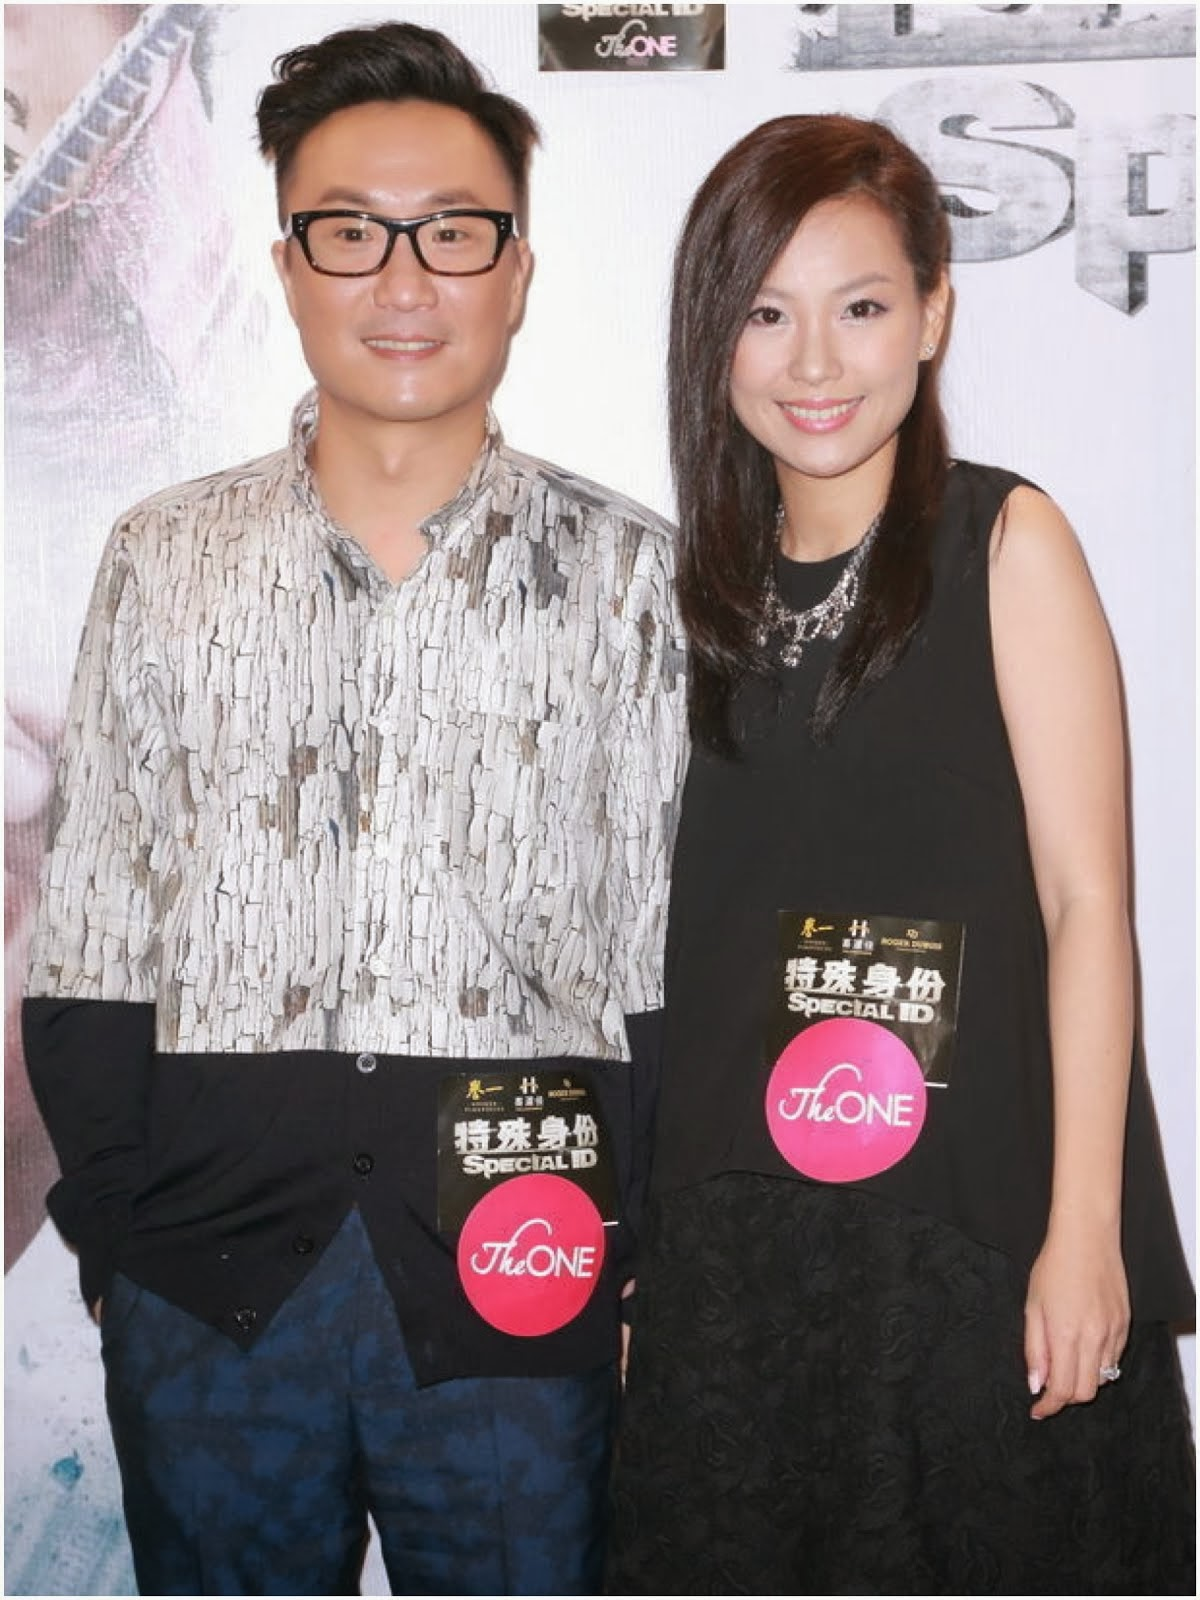 00O00 Menswear Blog: Ronald Cheng [郑中基] in Casely-Hayford - 'Special ID' Hong Kong Premiere